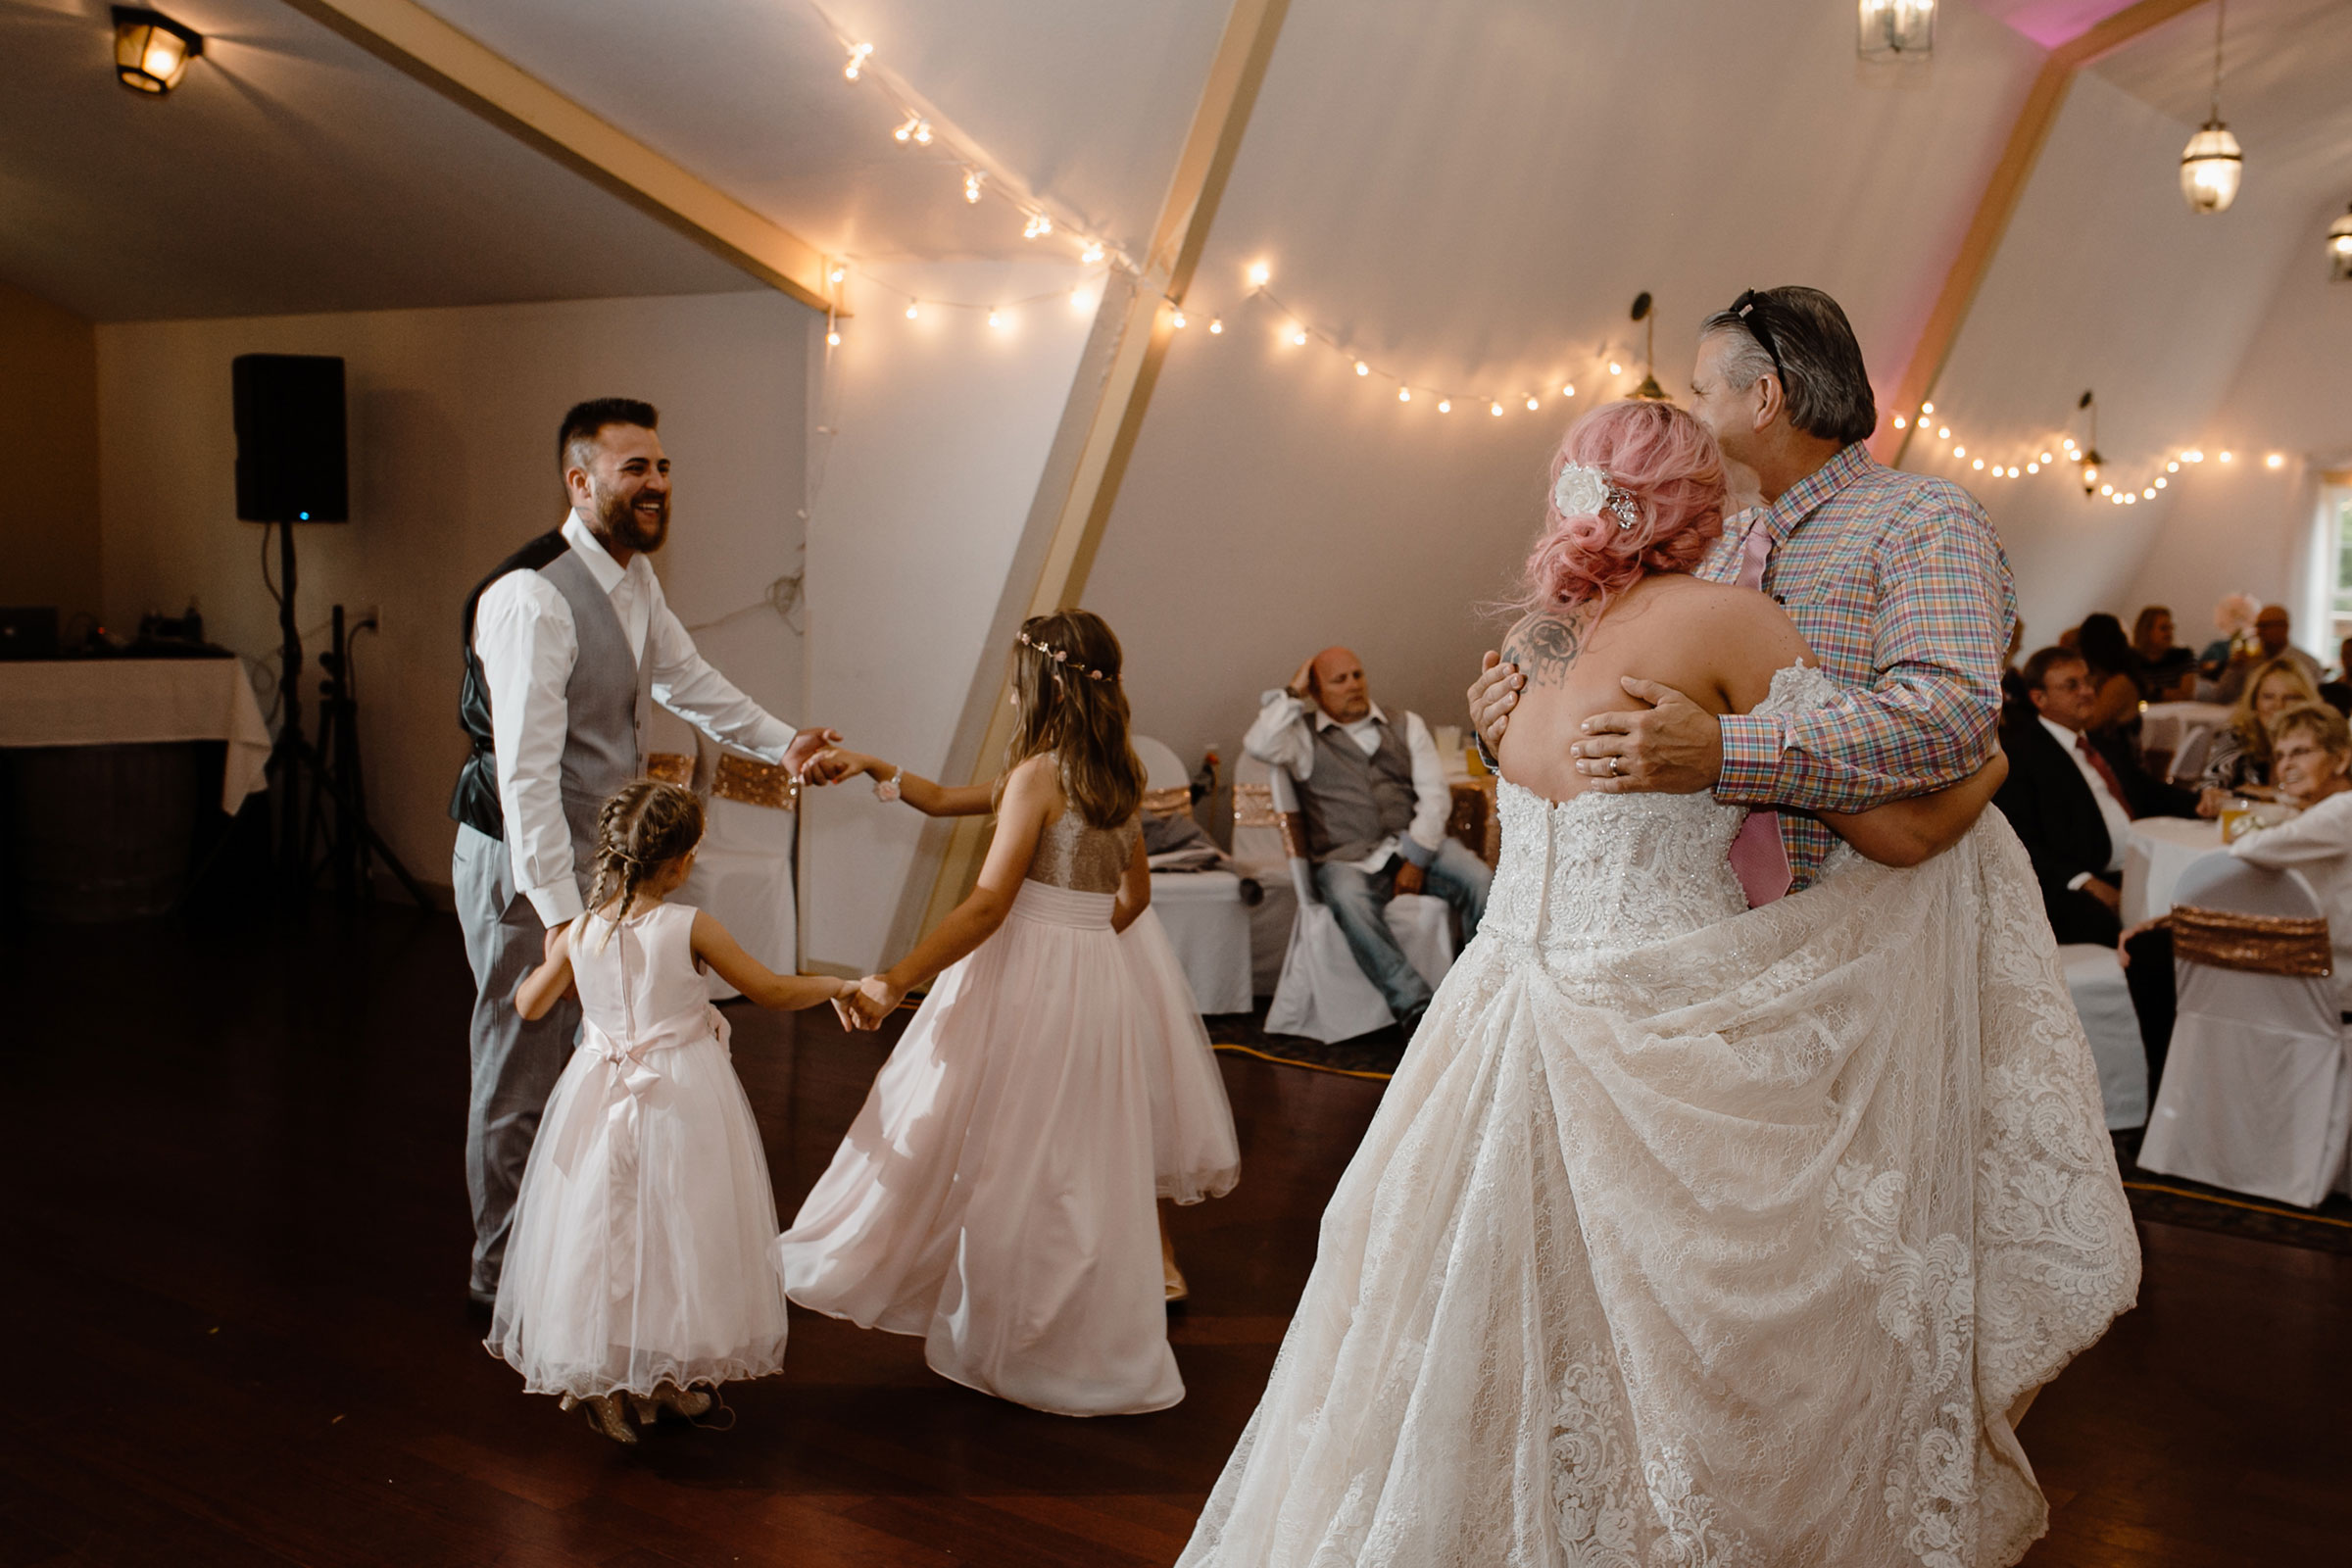 bride-dancing-with-step-dad-groom-dancing-with-daughters-wedding-summerset-winery-indianola-iowa-raelyn-ramey-photography.jpg